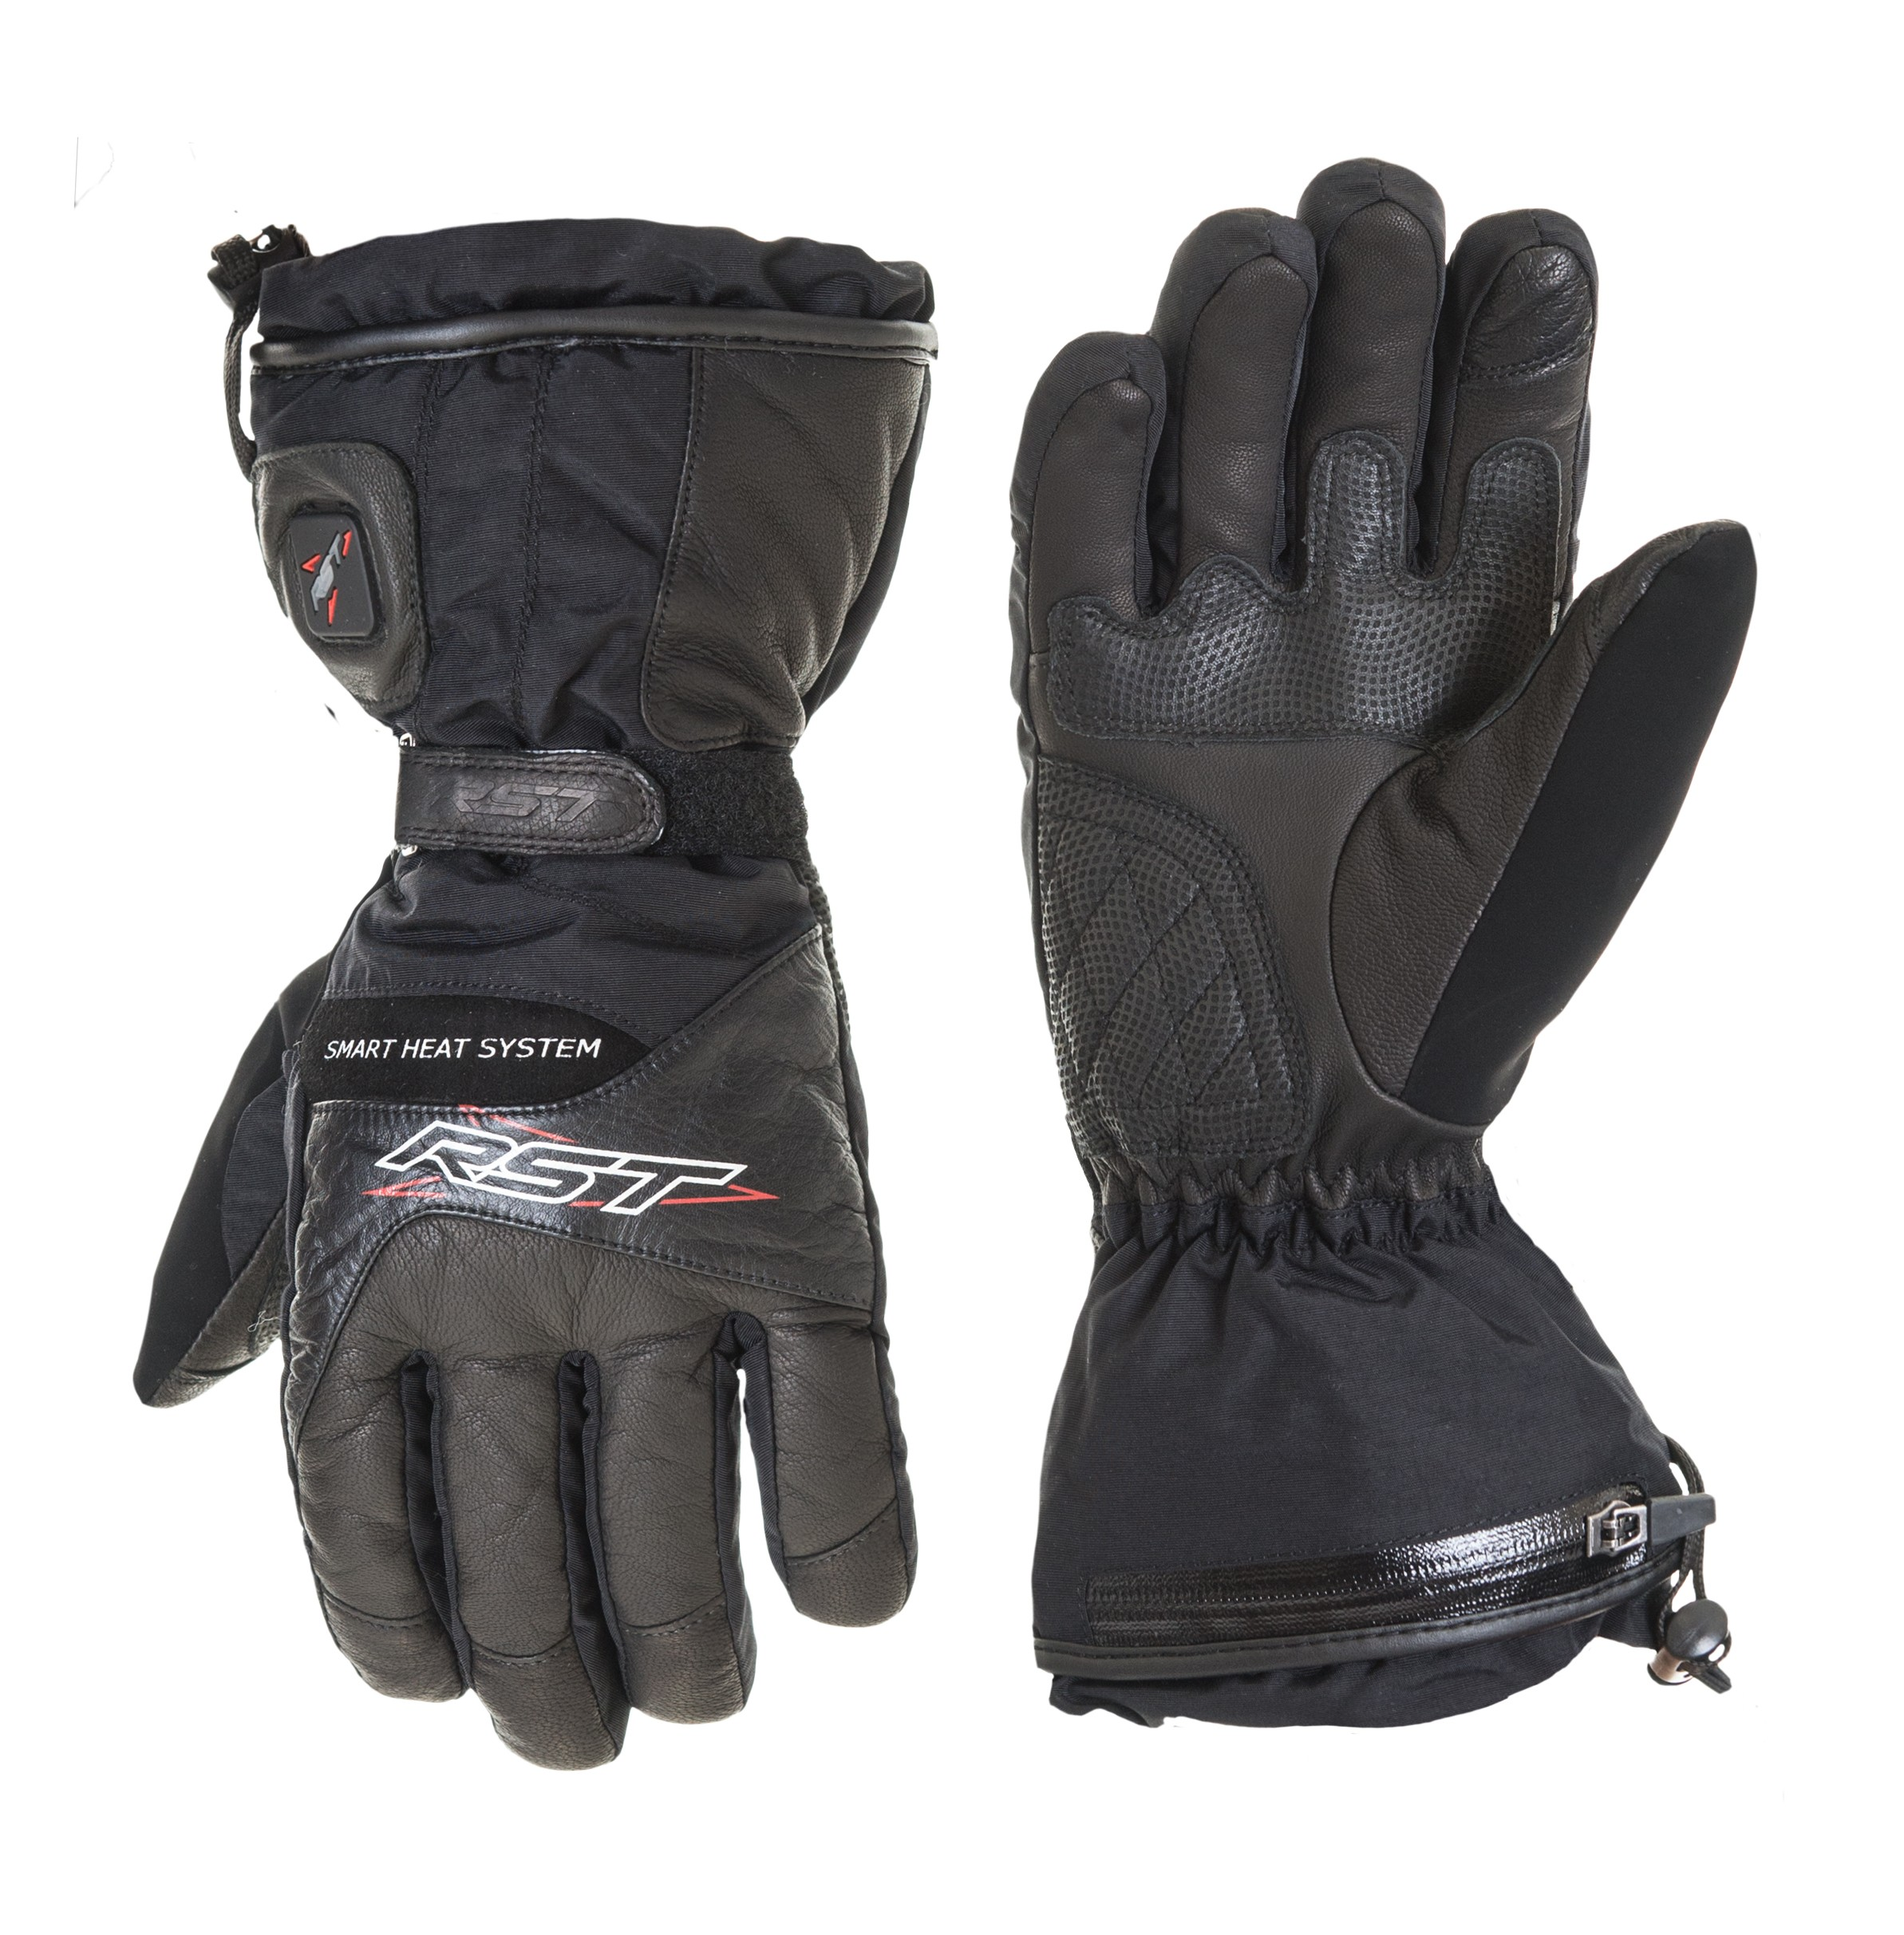 Mens gloves sports direct - More Views